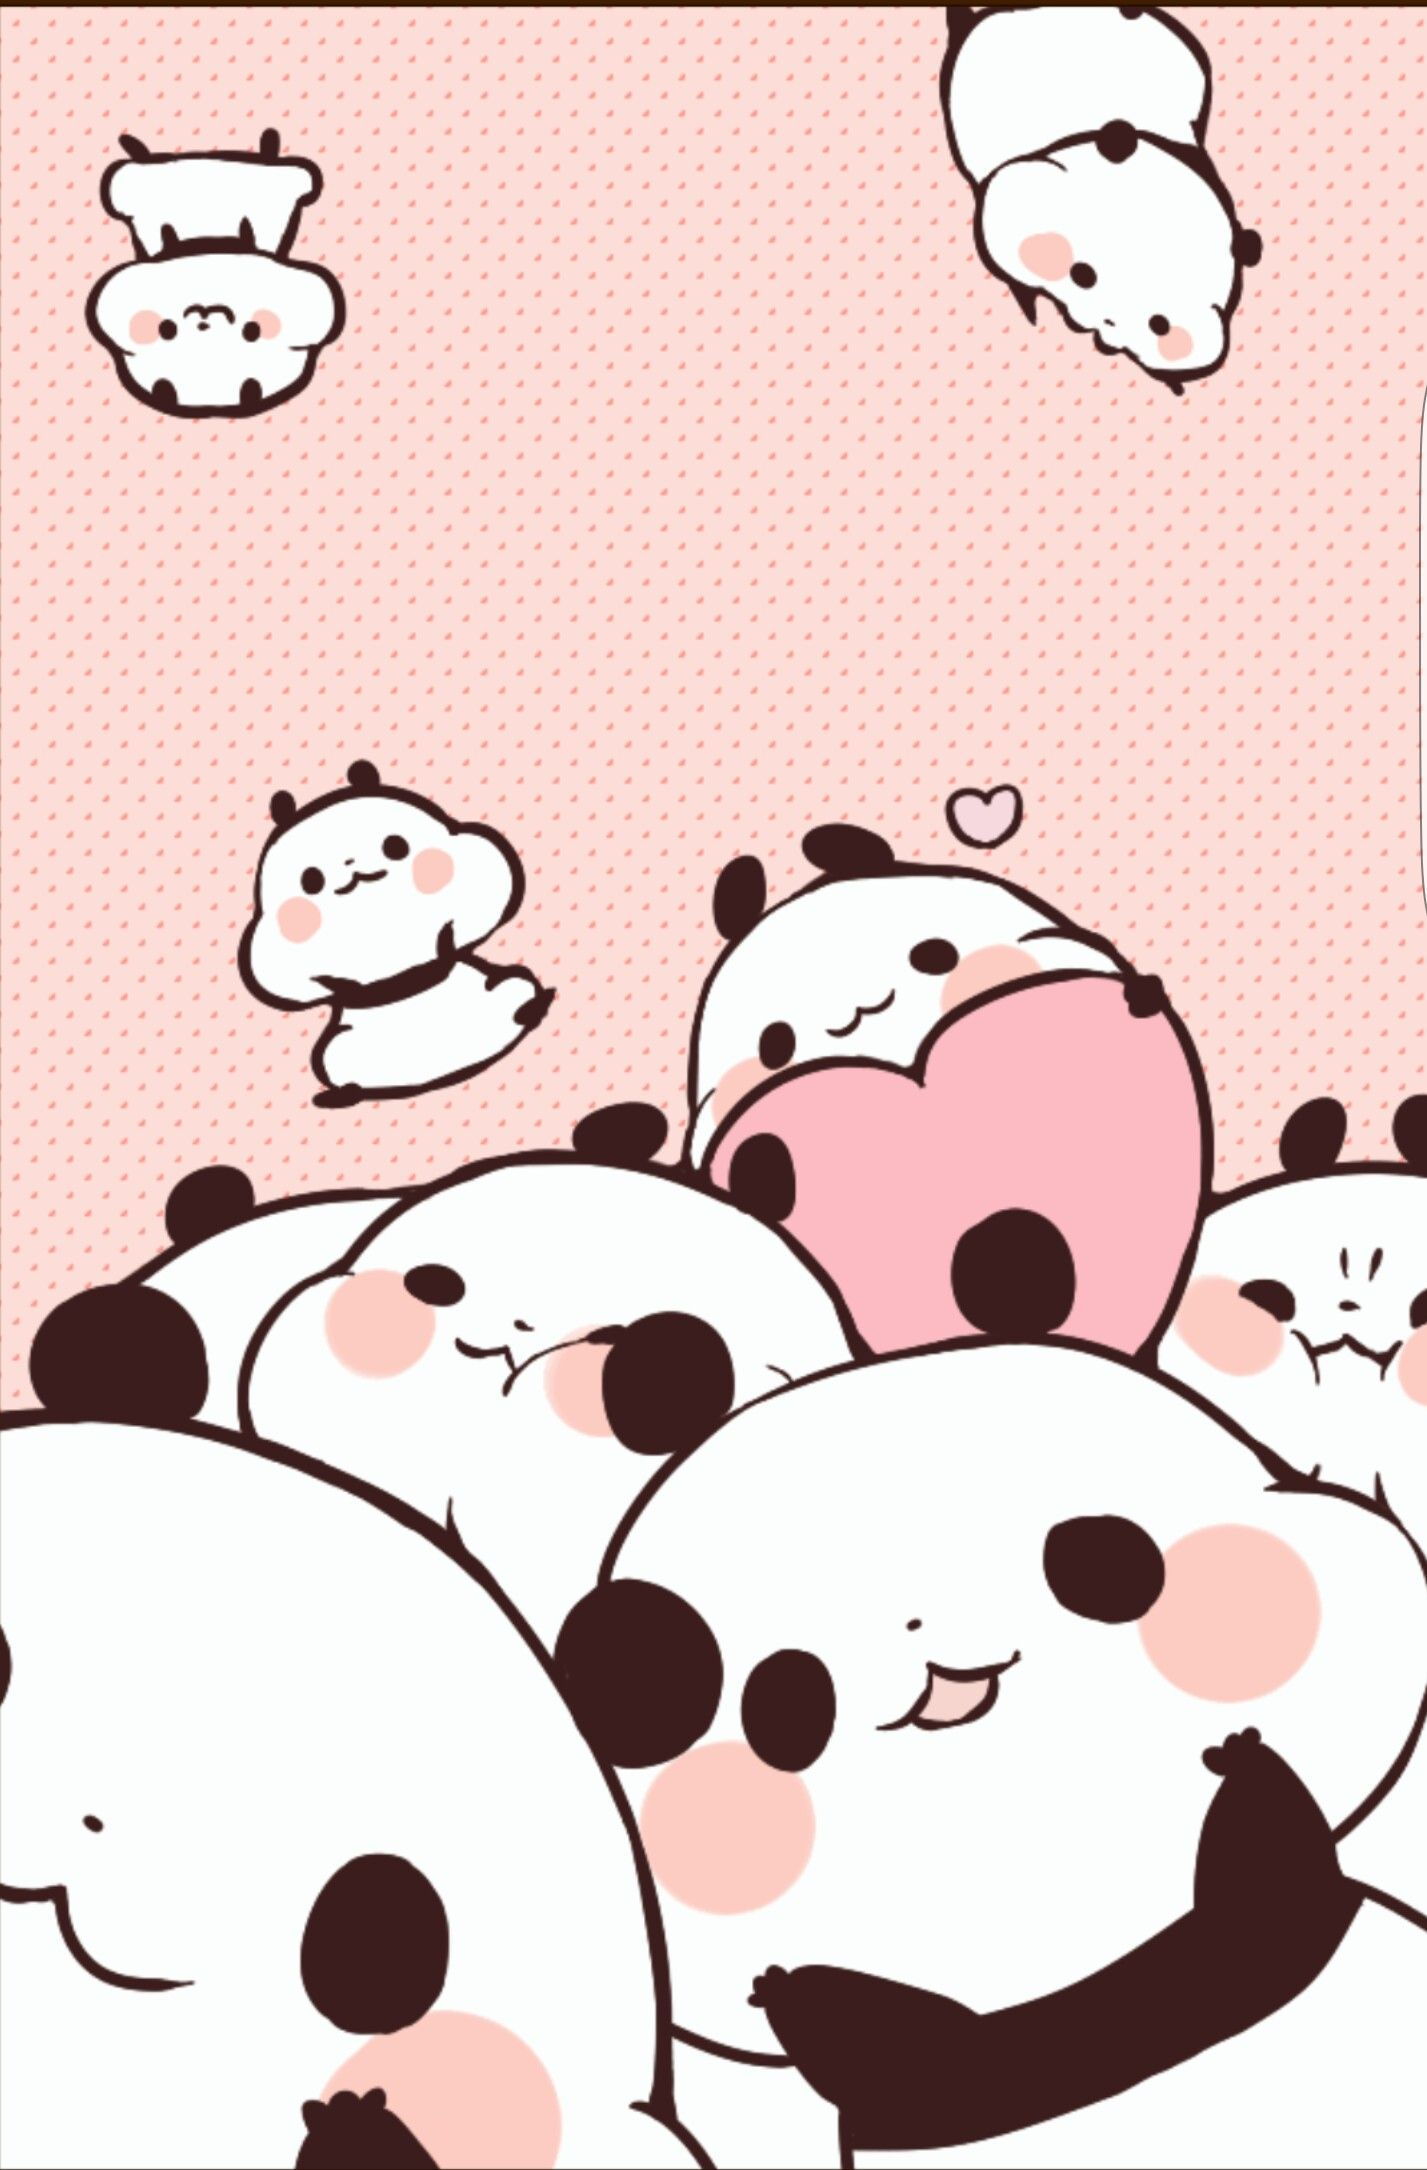 Panda Chibi Addiction Kawaii Backgrounds Bears Cute Pandas